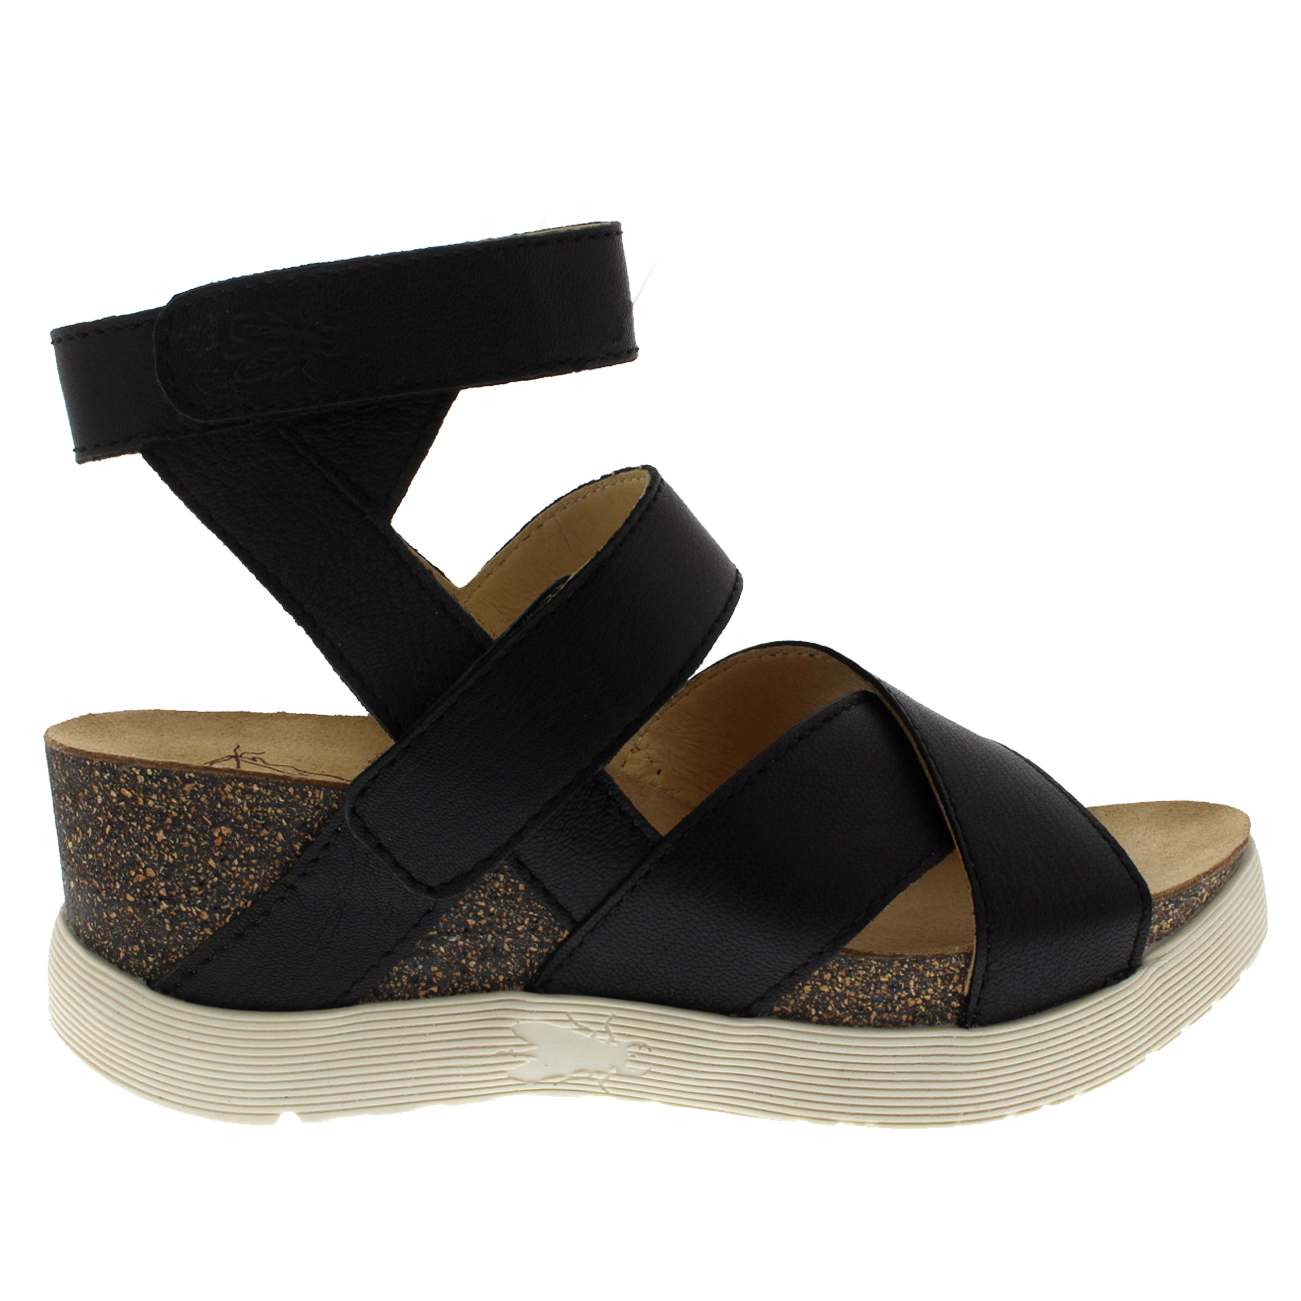 Womens-Fly-London-Wedge-Leather-Open-Toe-Summer-Cut-Out-Sandals-US-5-12 thumbnail 13